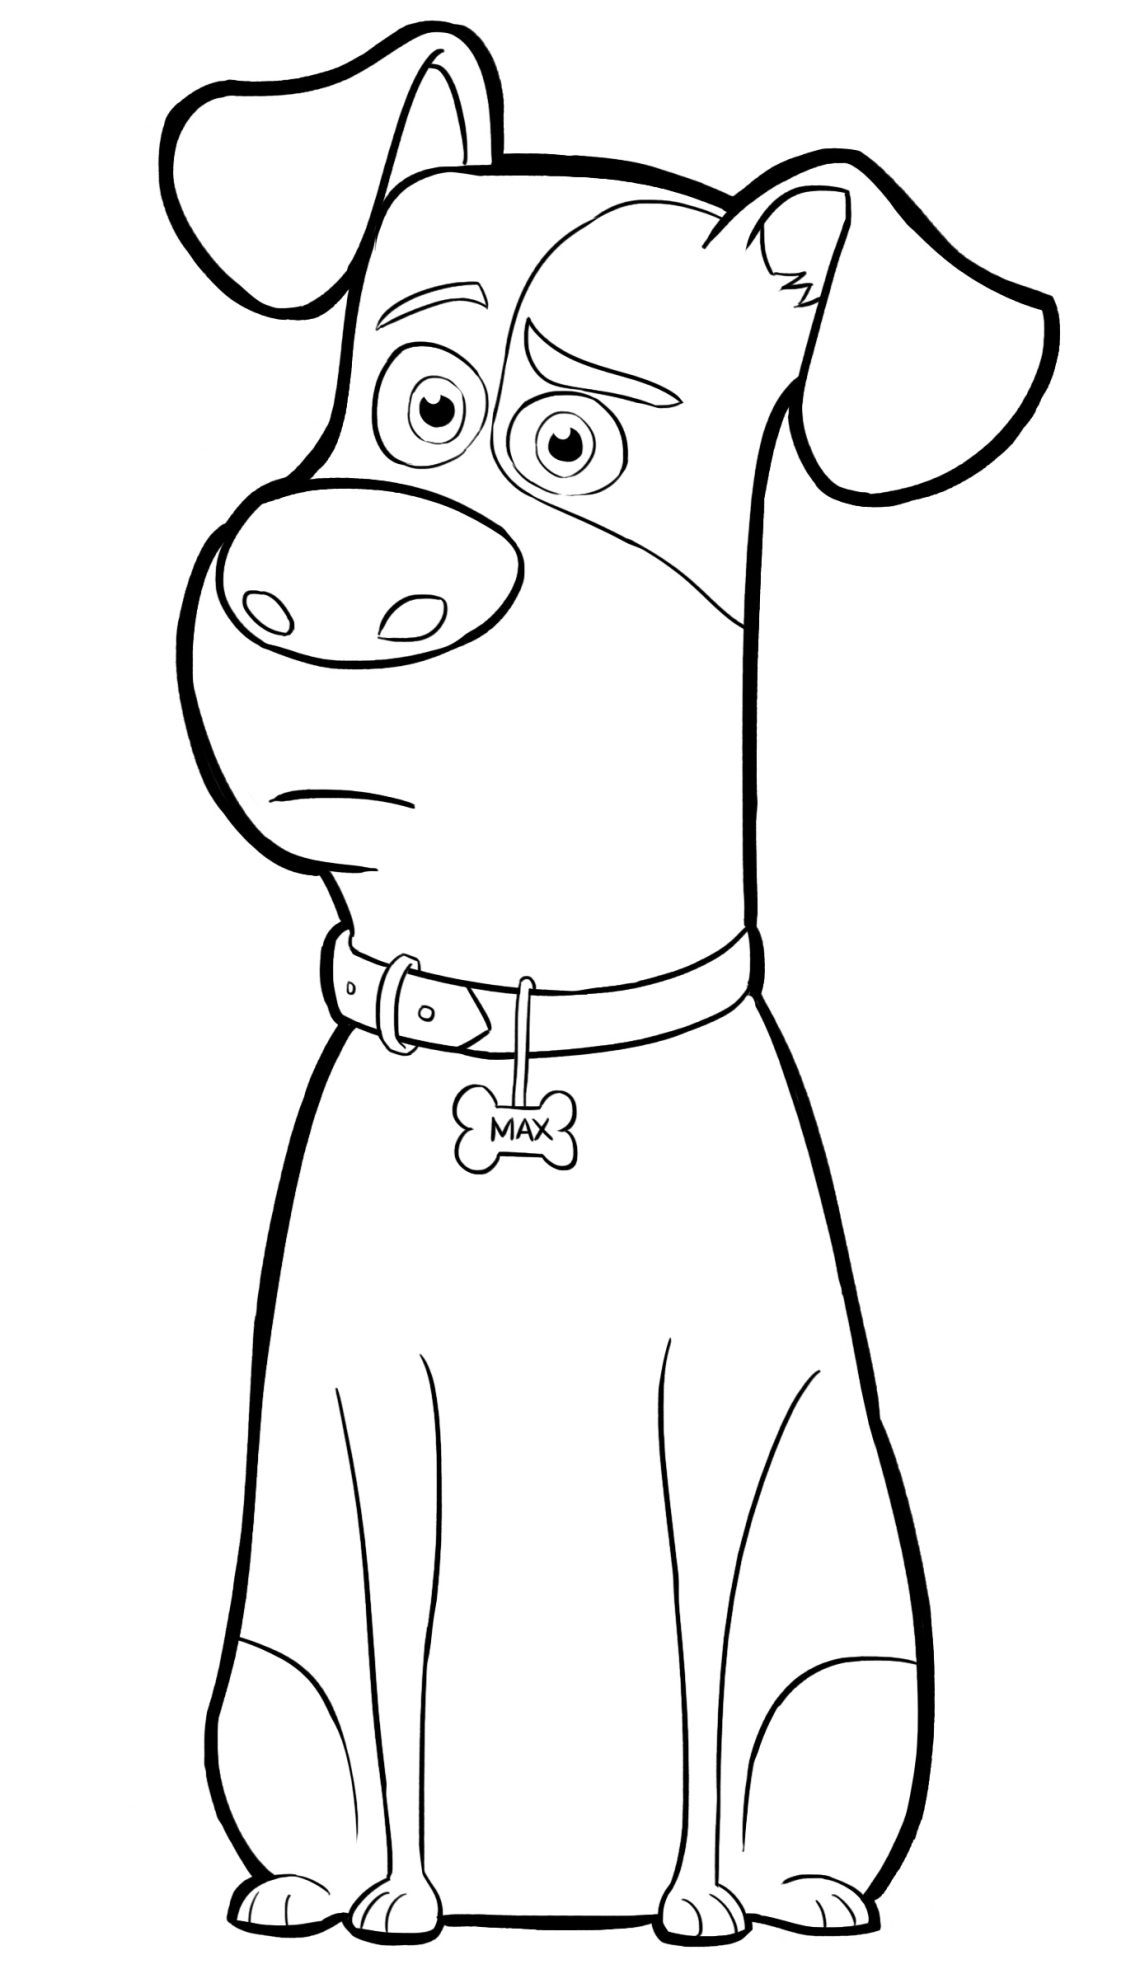 Pets Coloring Pages - Best Coloring Pages For Kids | coloring pages for toddlers